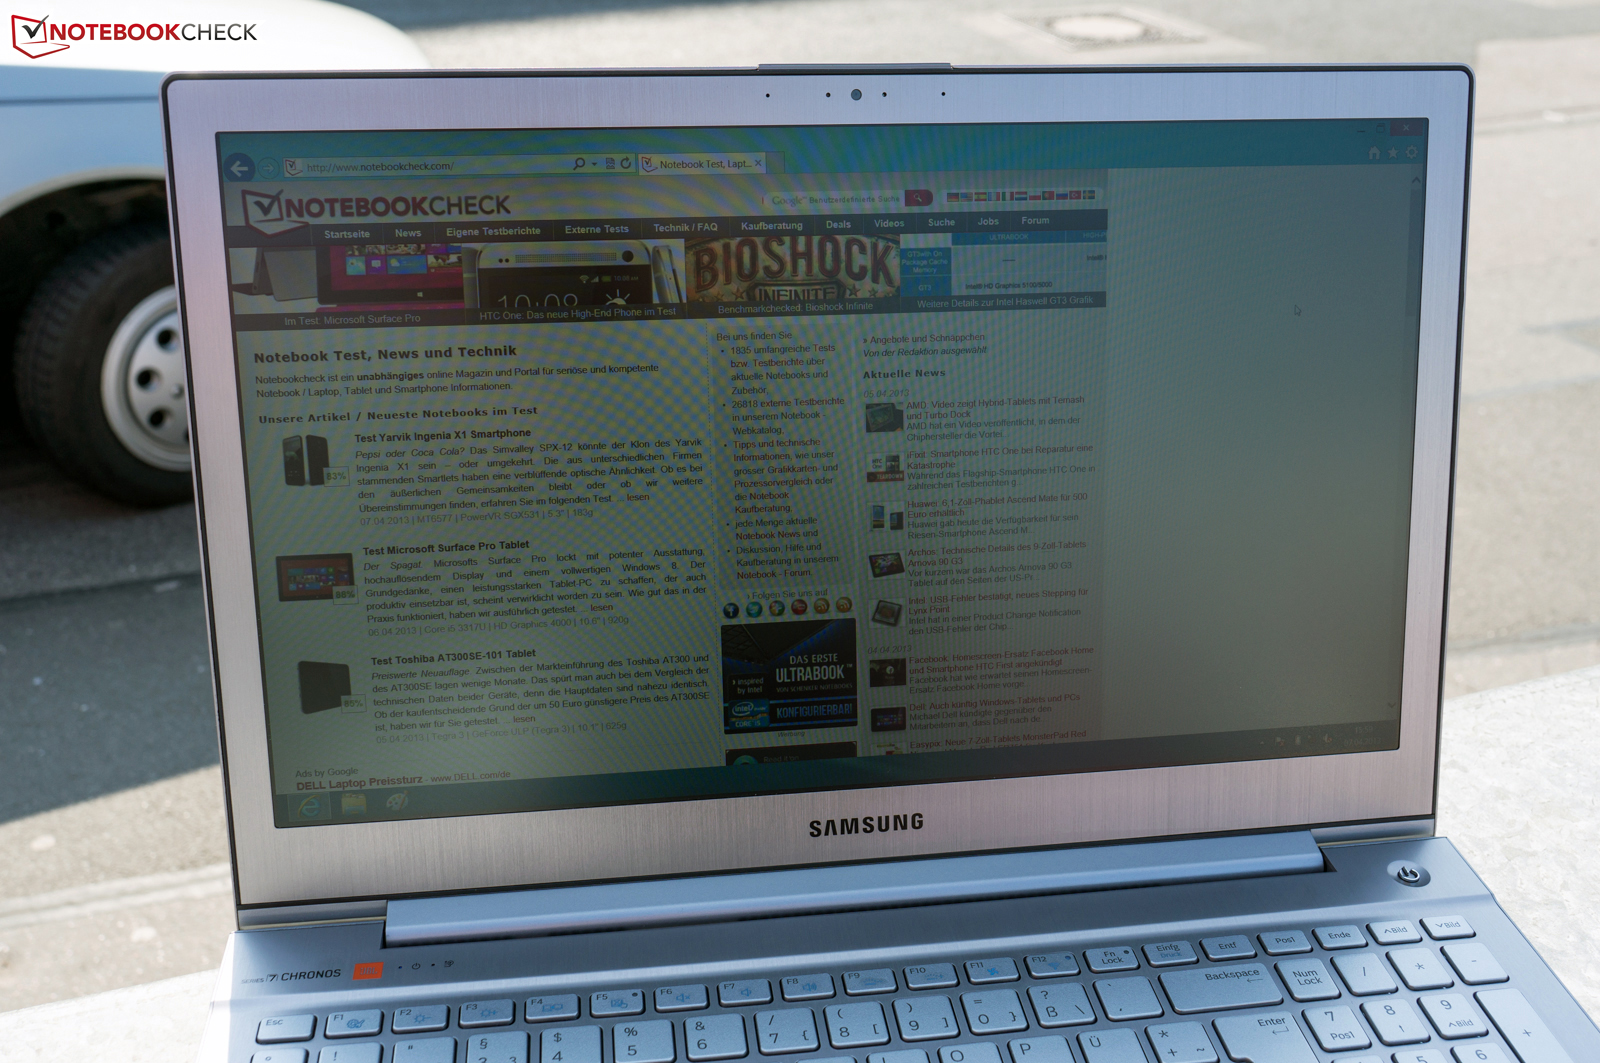 Notebook samsung jbl -  The Settings This Is An Impressive Feat Only With The Sun Shining From Behind Or Another Strong Light Source Does The Screen Reach Its Limits